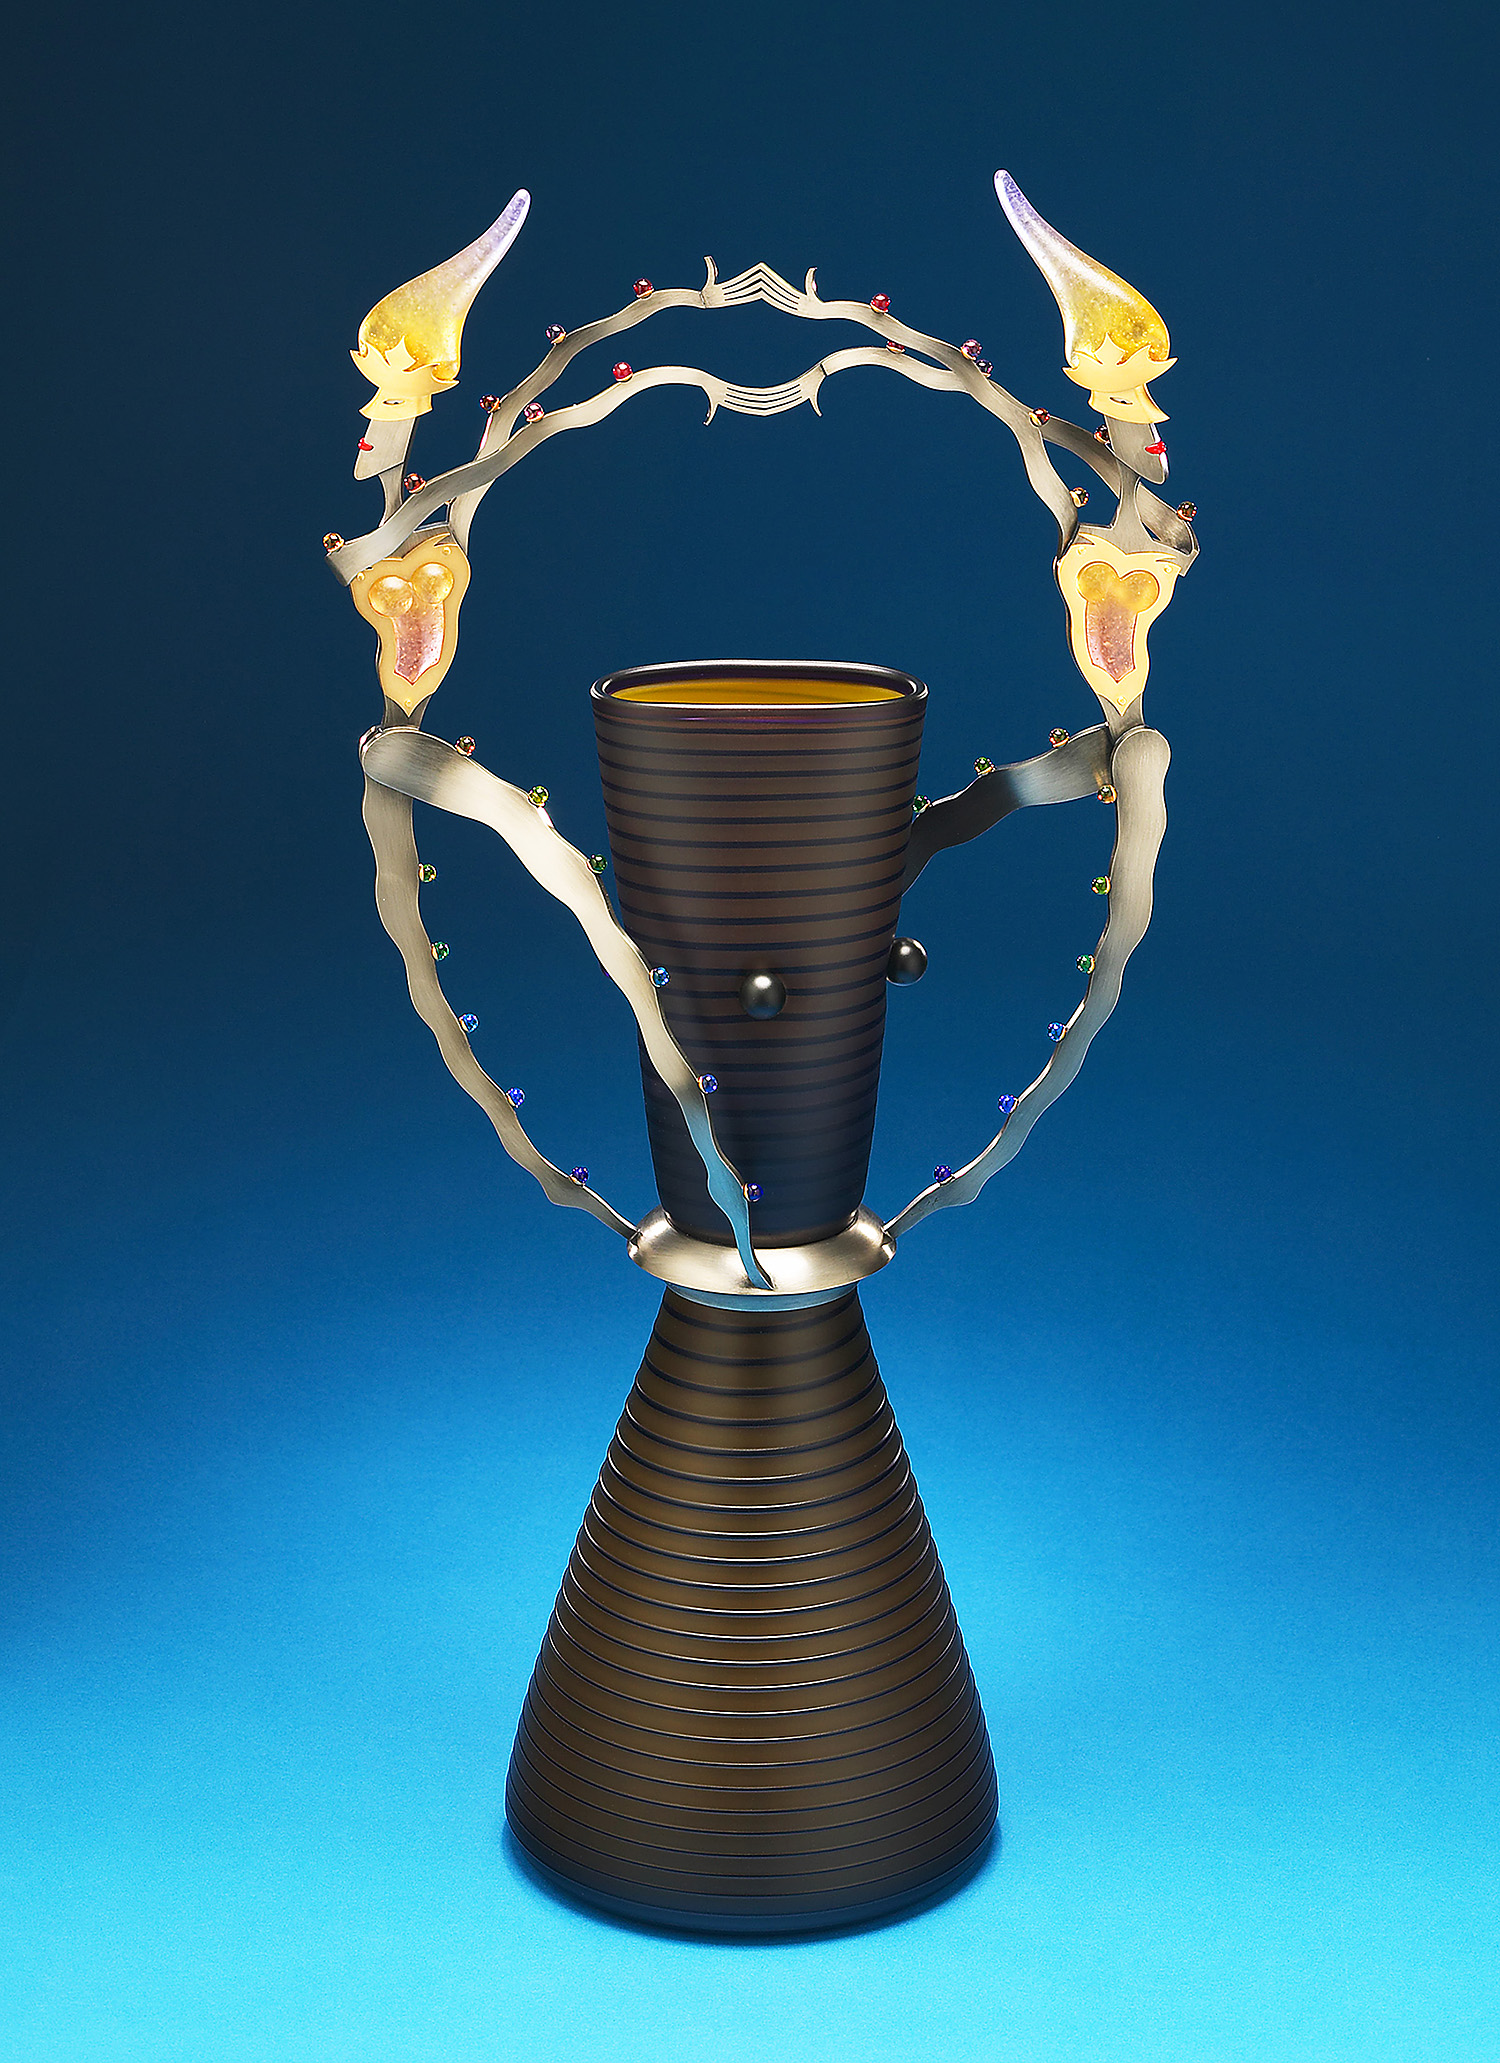 Flutter   2004. Blown glass, nickel and gold-plated bronze, pate de verre, Vitrolite. 27½ x 13½ x 8""